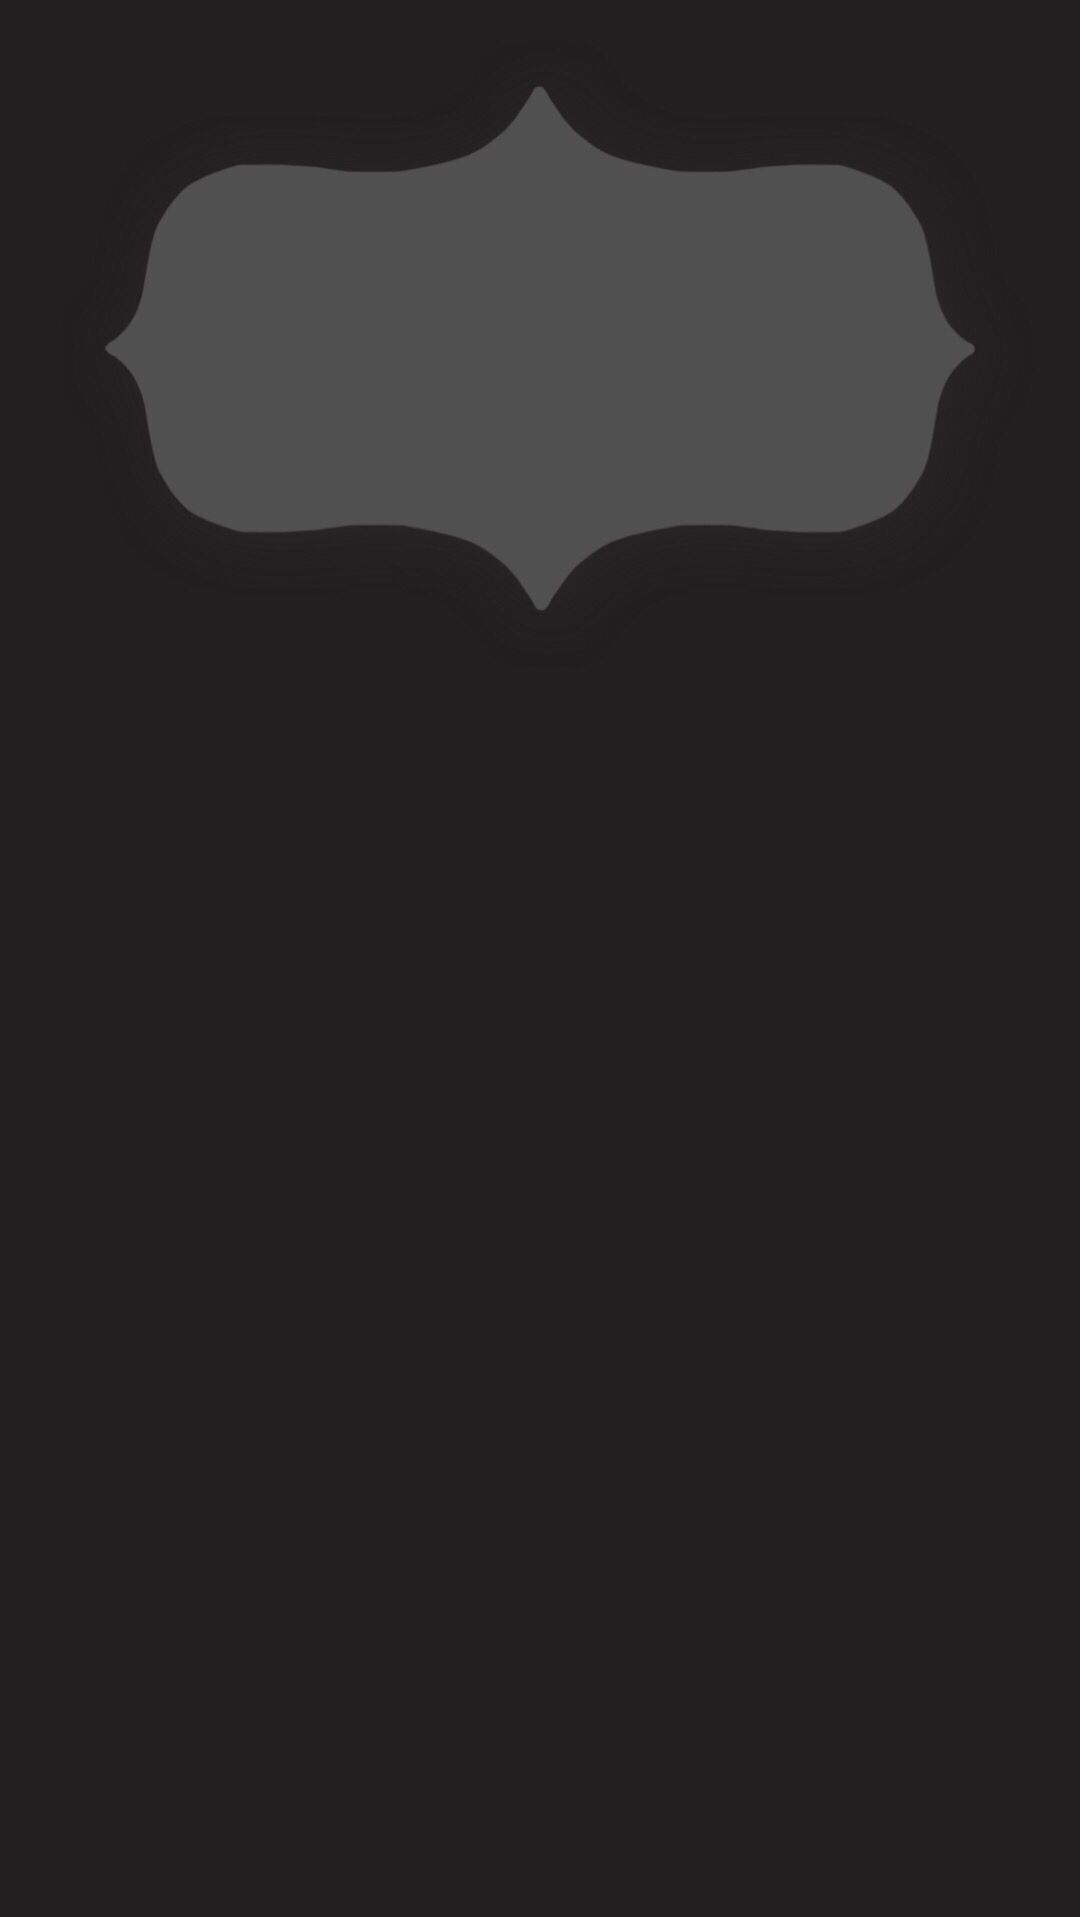 iPhone 6 Plus lock screen wallpaper. Minimal dark gray